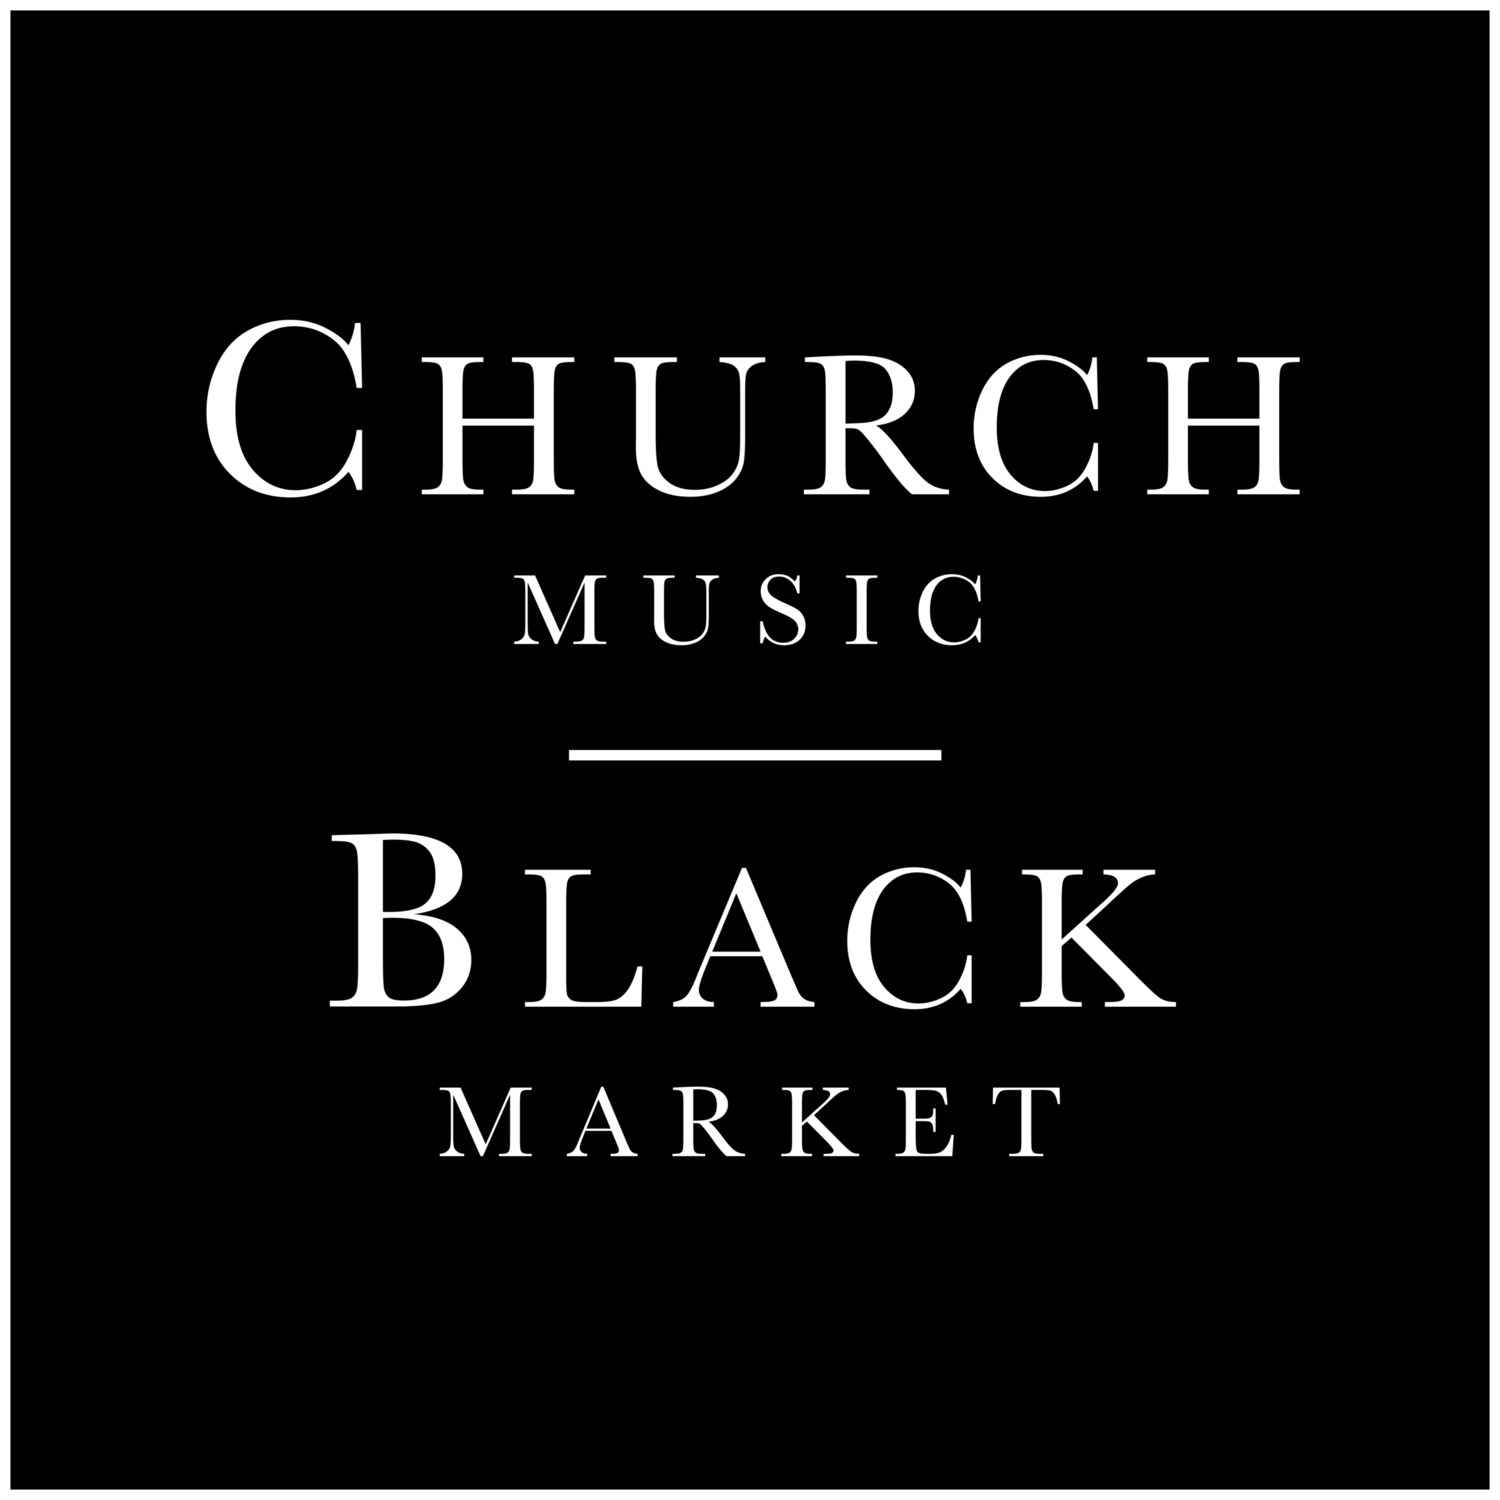 Church Music Black Market